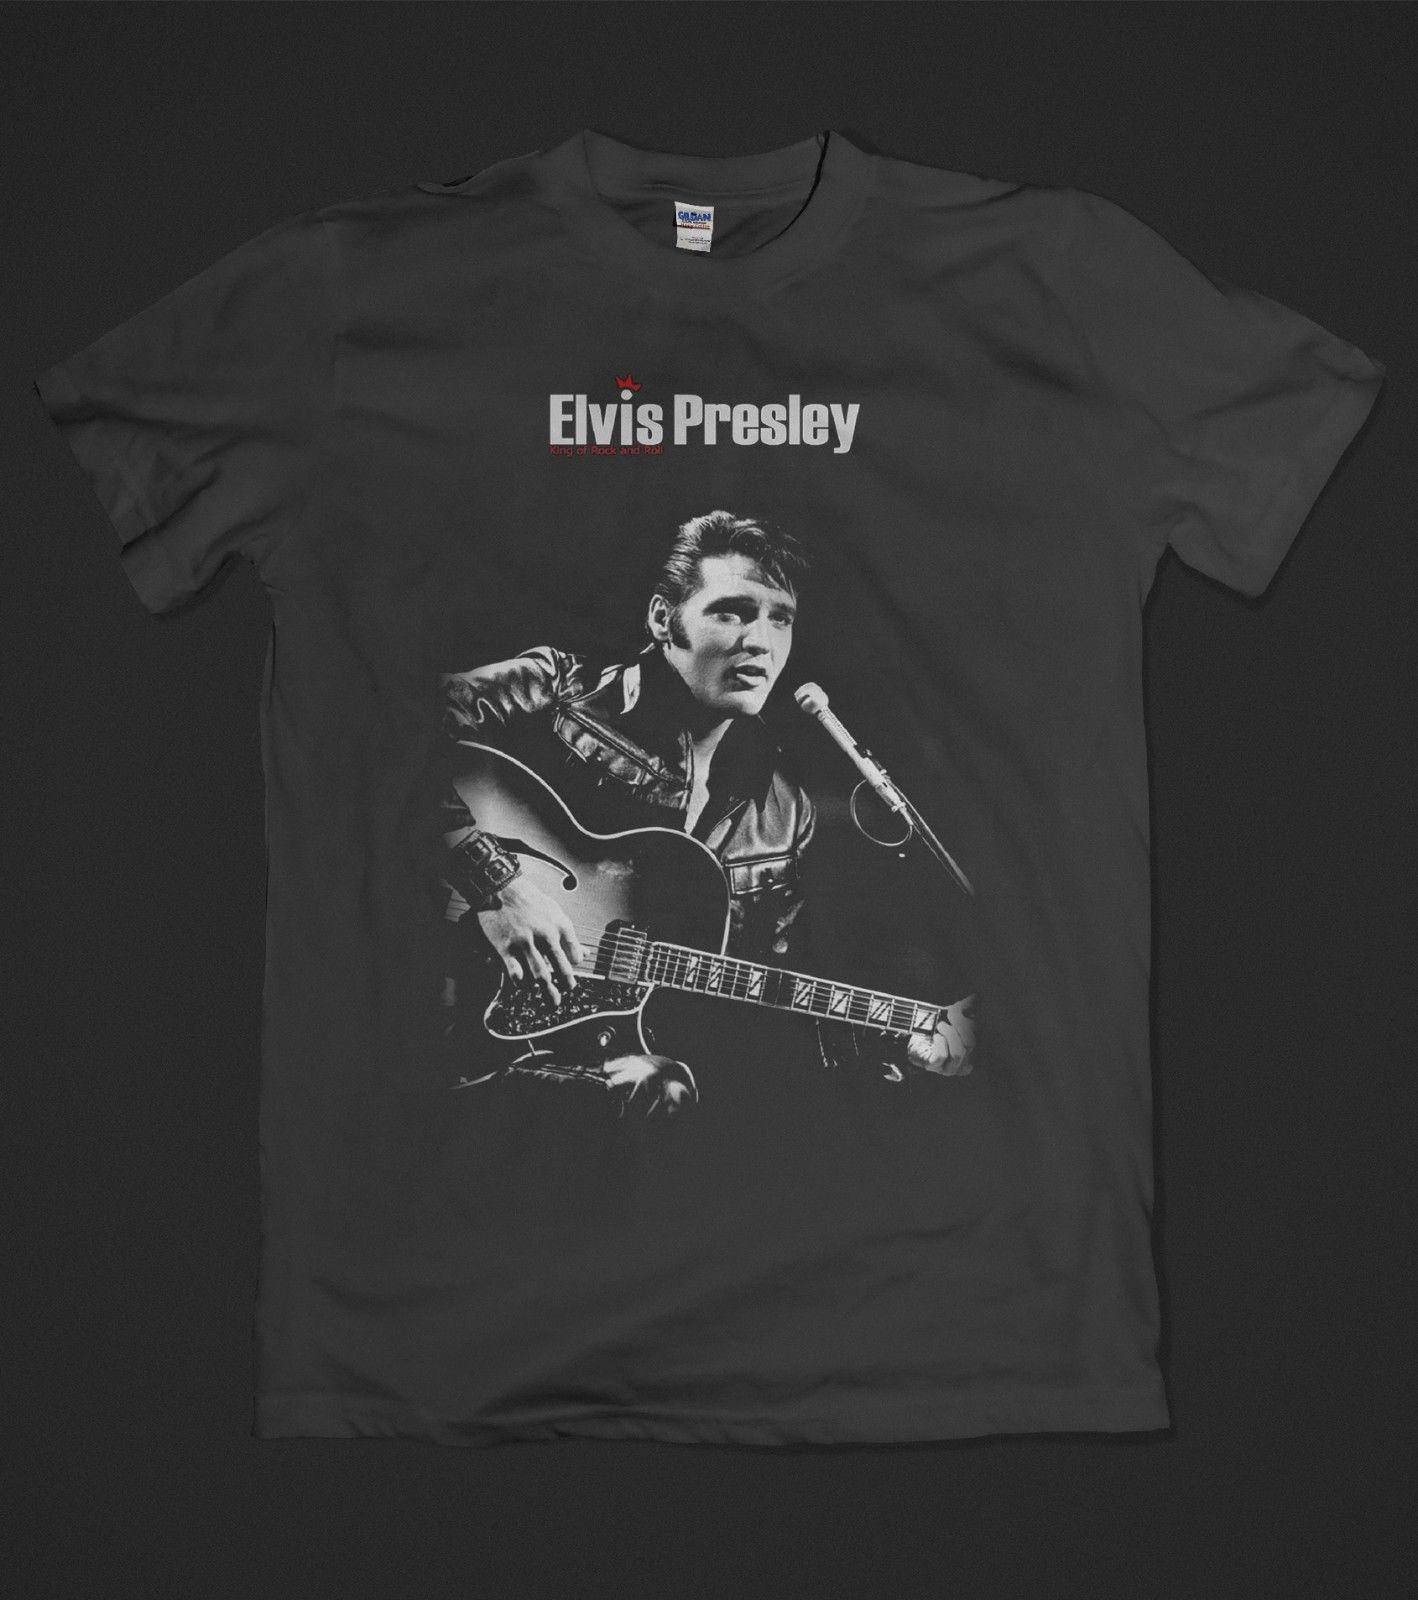 b5d8d401a16 Elvis Presley T Shirt The King Of Rock  N  Roll Cotton Short Sleeve S To  XXL Belgium Soccerer Jersey 2018 Pure Cotton Round Collar Men Cool T Shirts  Designs ...